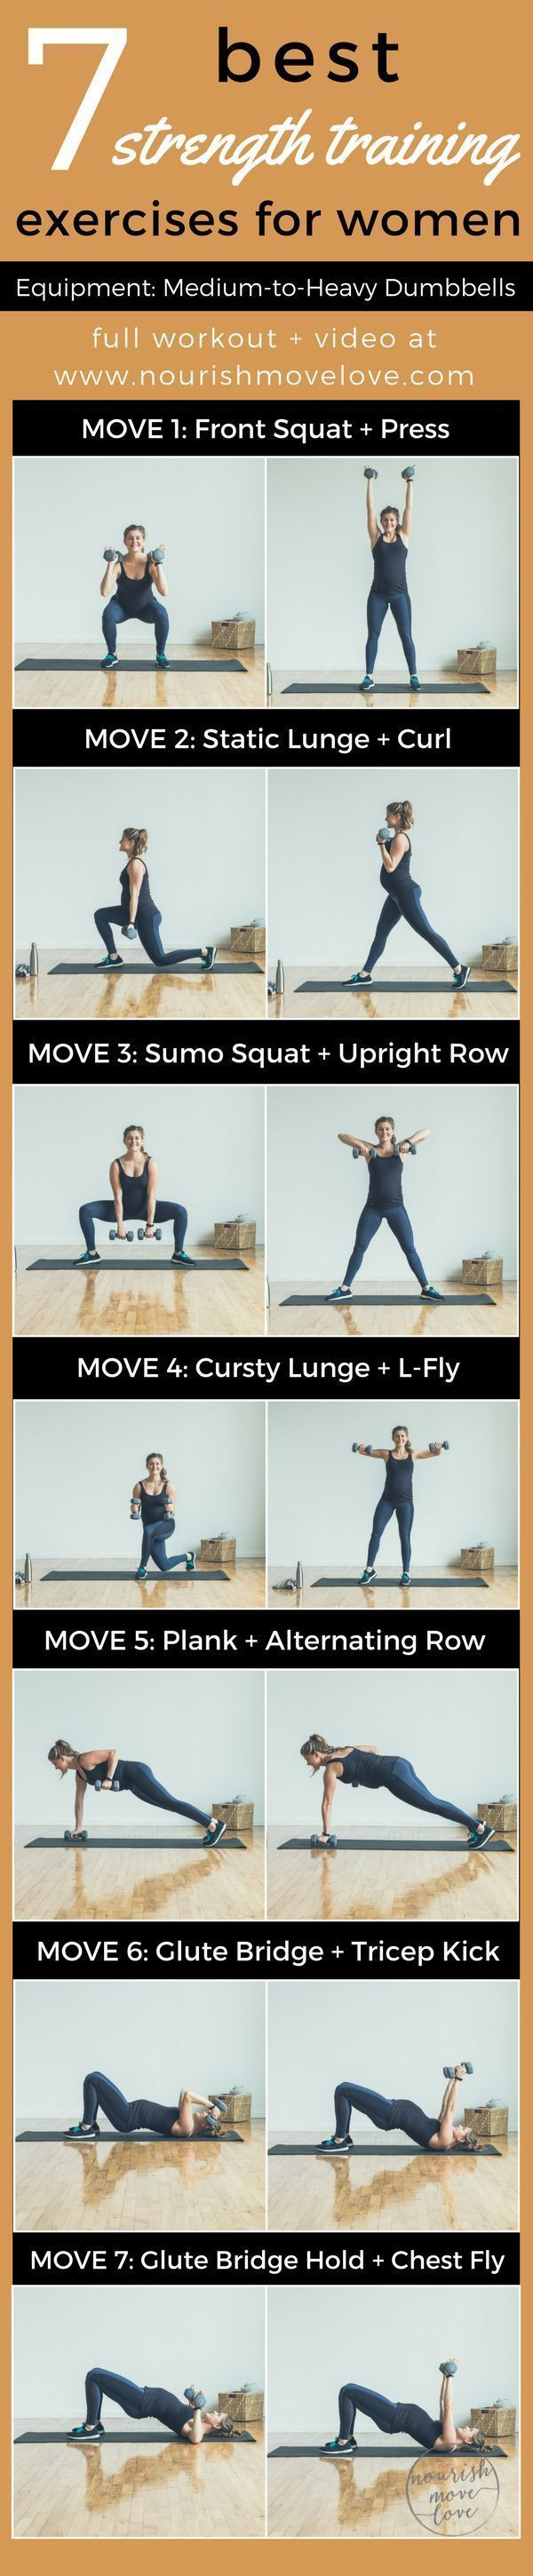 7 Best Strength Training Exercises for Women. An at-home total body workout challenge. 30-minute workout. Squat, press, lunge, curl, row, kick, fly; bicep, back, tricep, chest, glutes   www.nourishmovelove.com #pregnancyandflying, #benchpressweighttraining